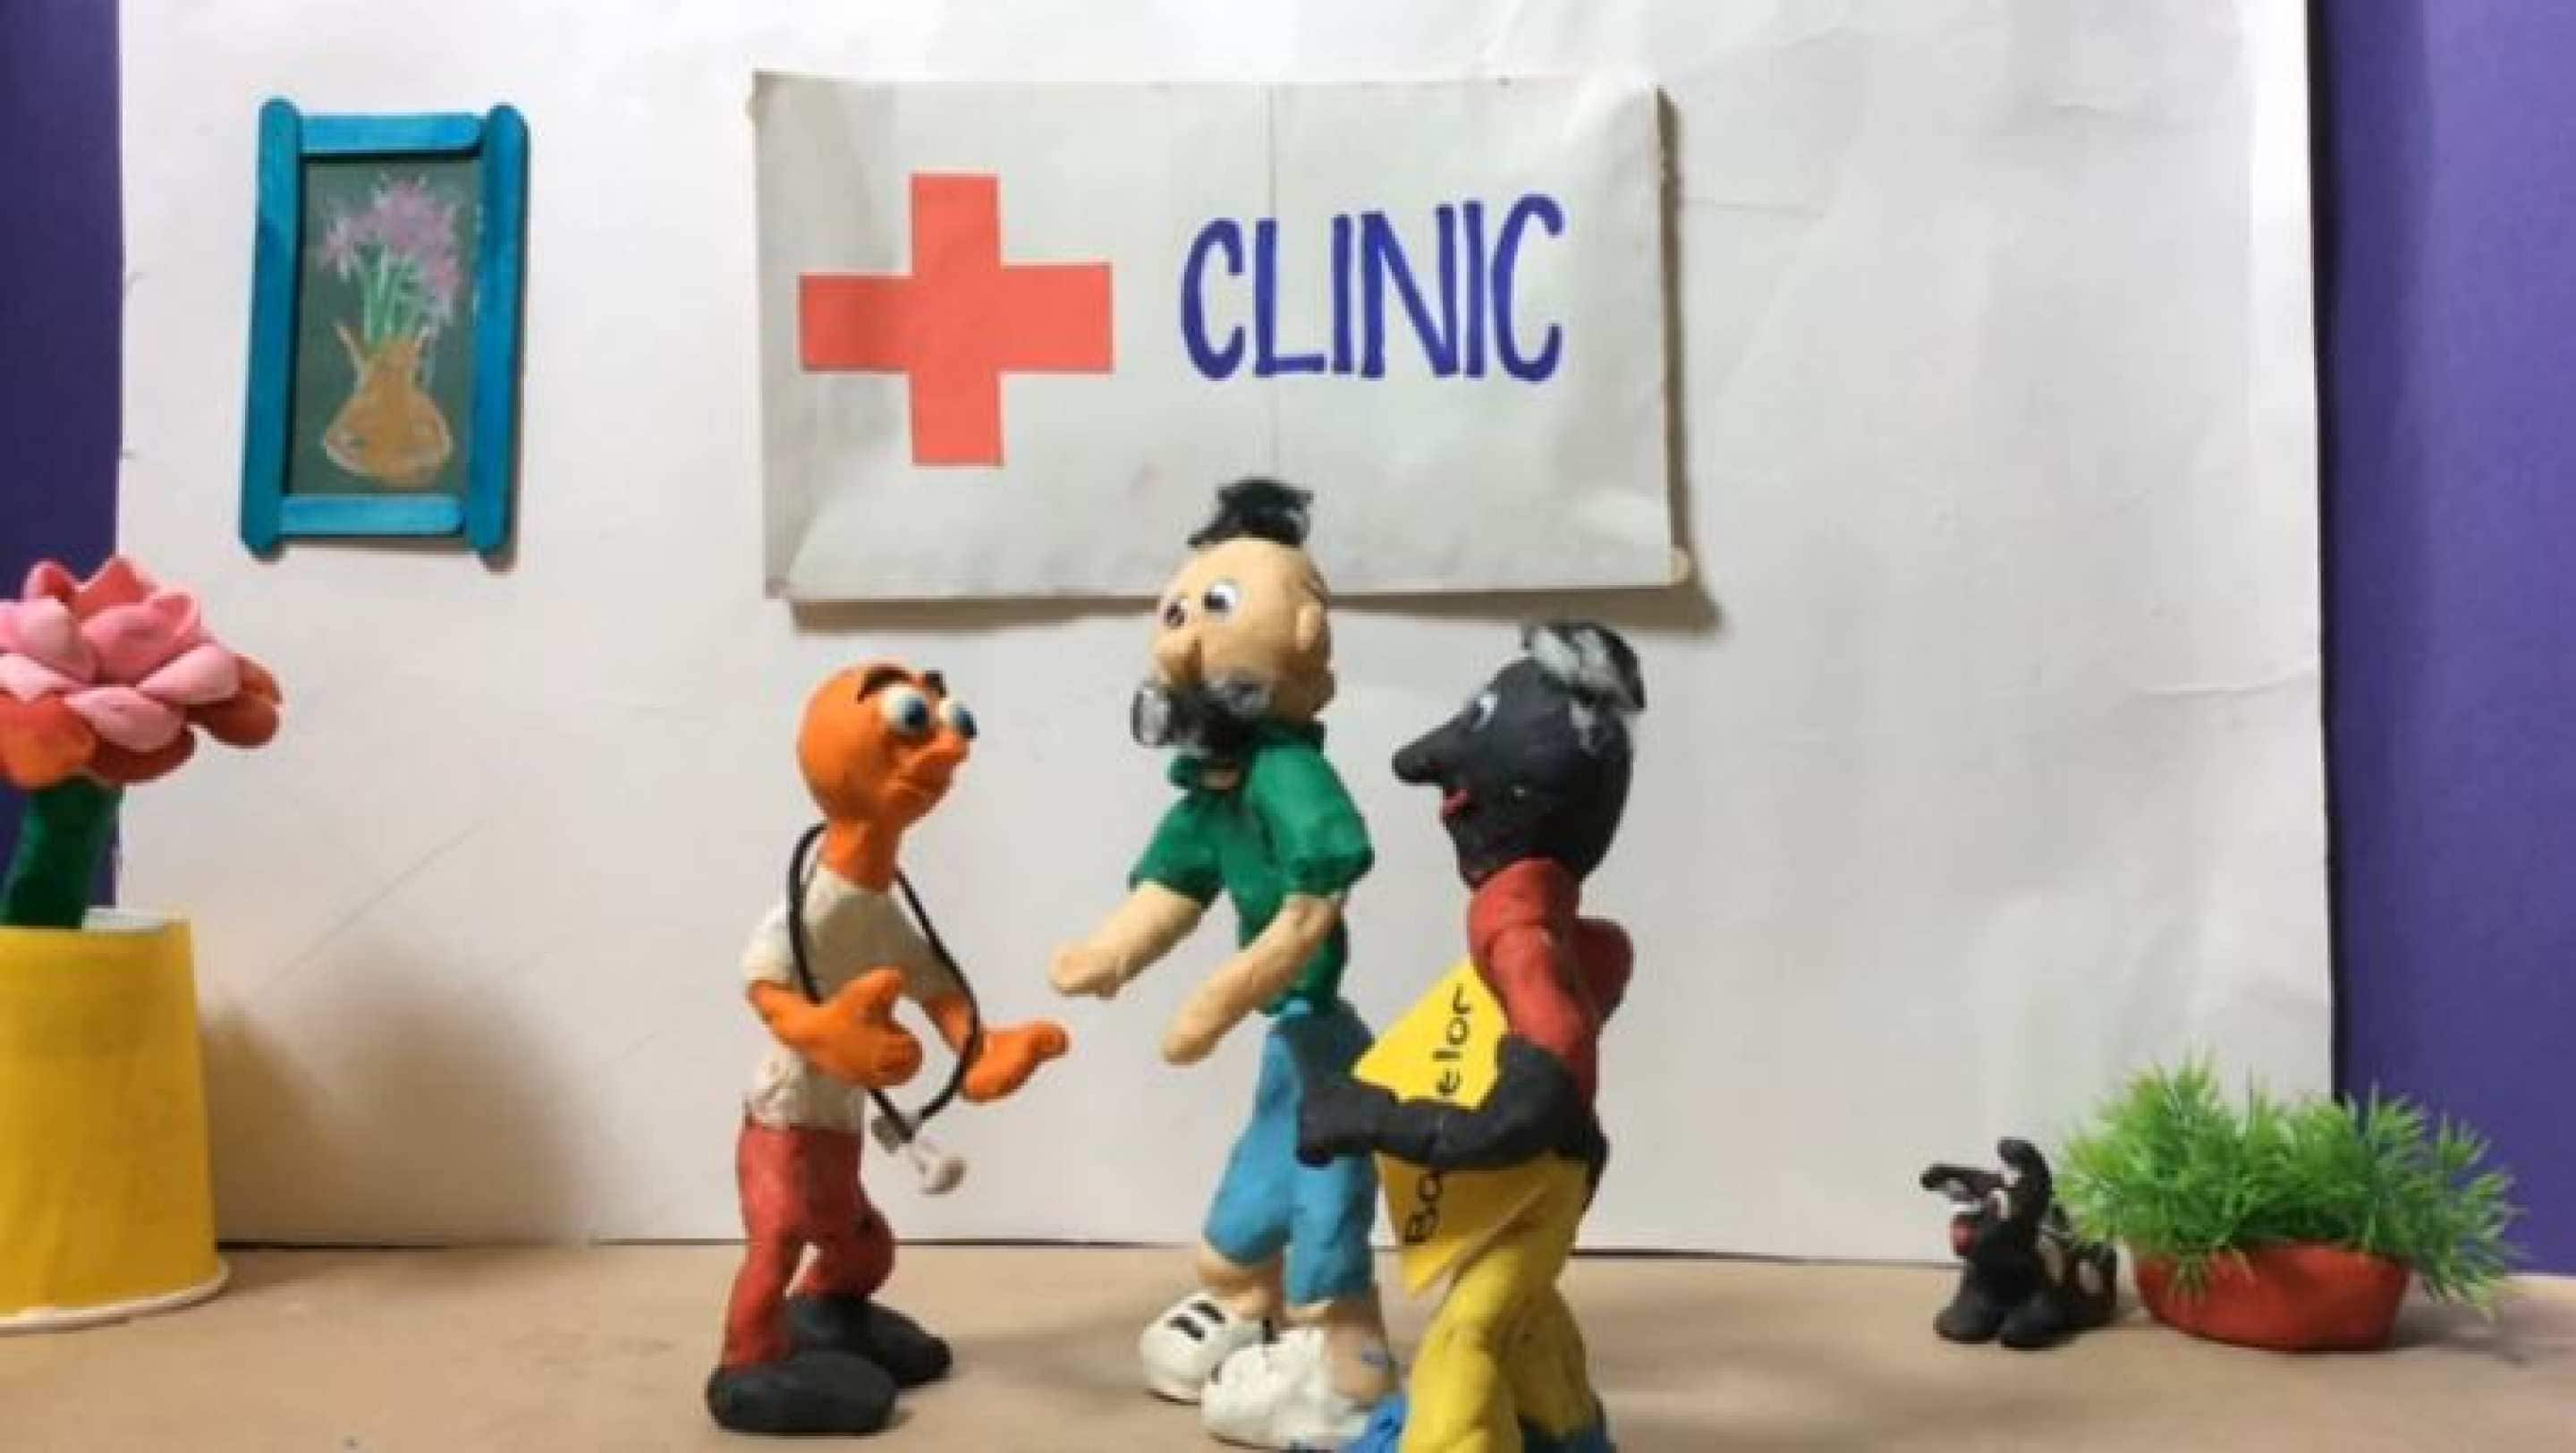 Still from a Framing Health claymation video